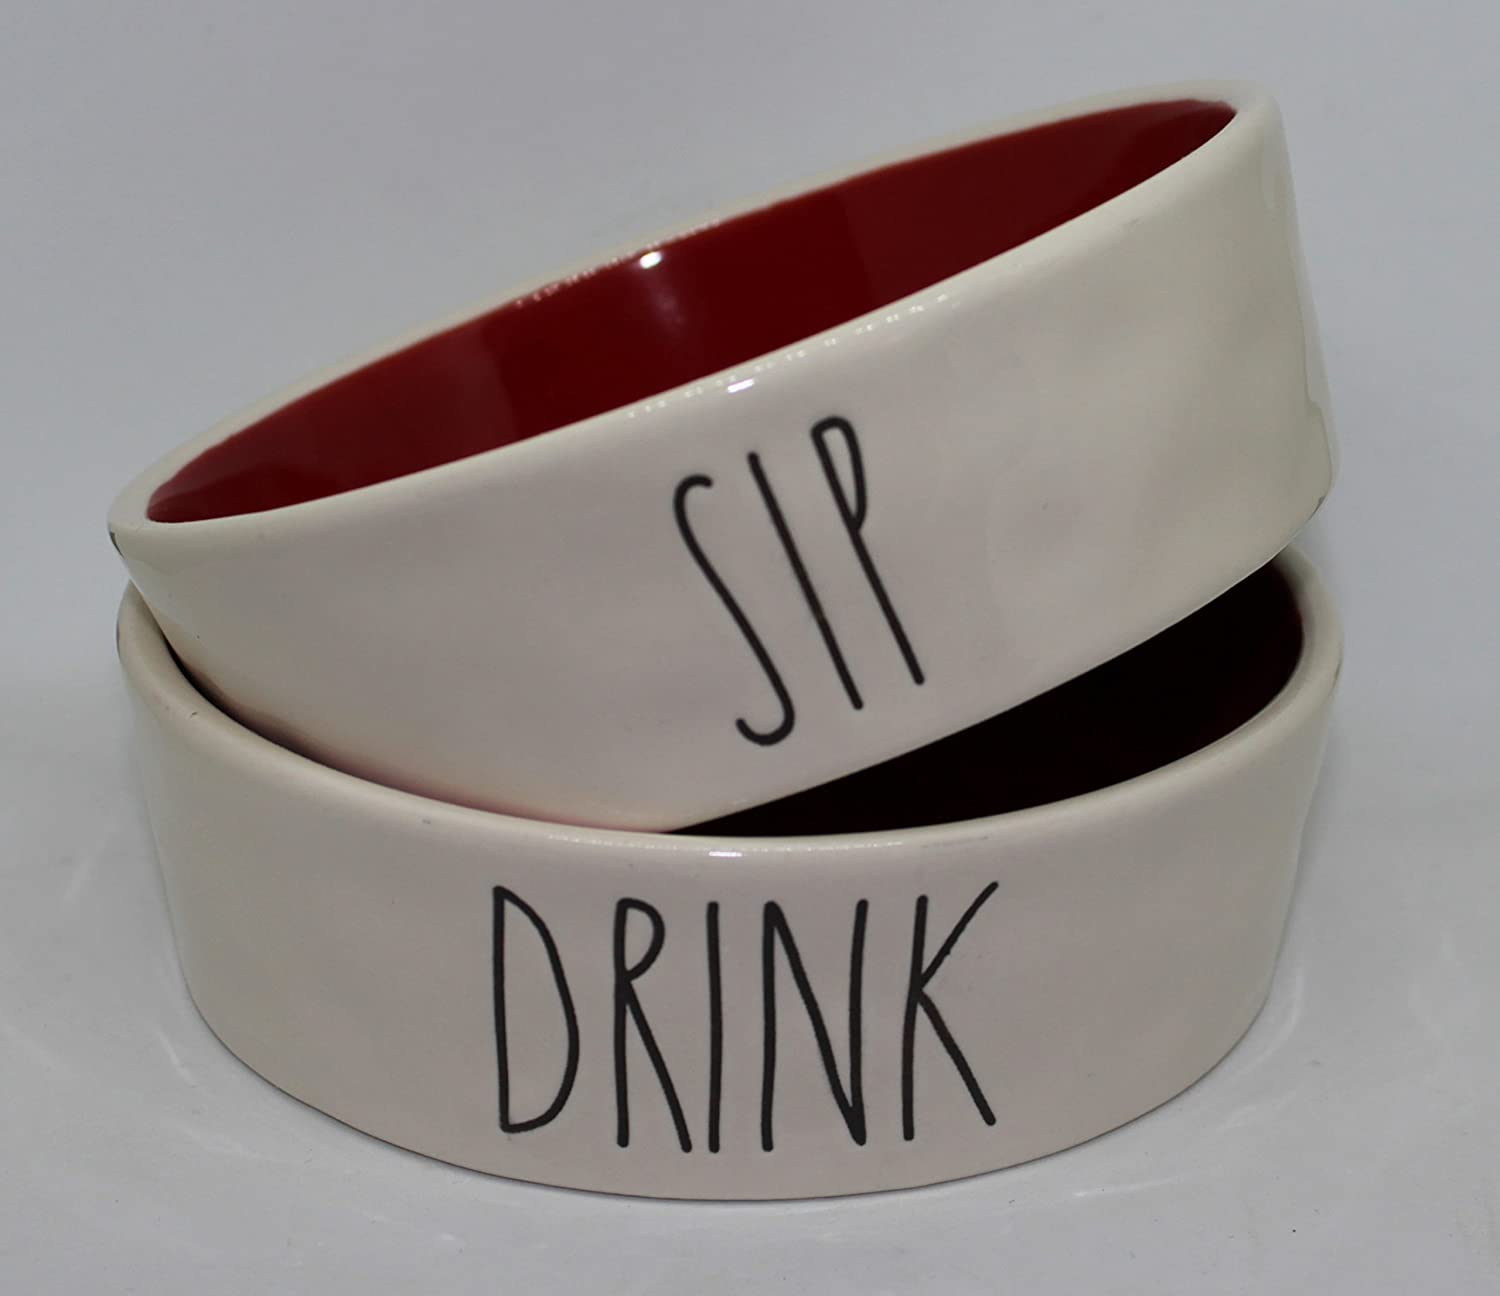 Rae Dunn SIP and Drink in Large Letters LL with Christmas Red Interior 2 Bowl Set of Small 4.5 inch Round Pet Cat Cereal Soup Snack Bowl. by Magenta.